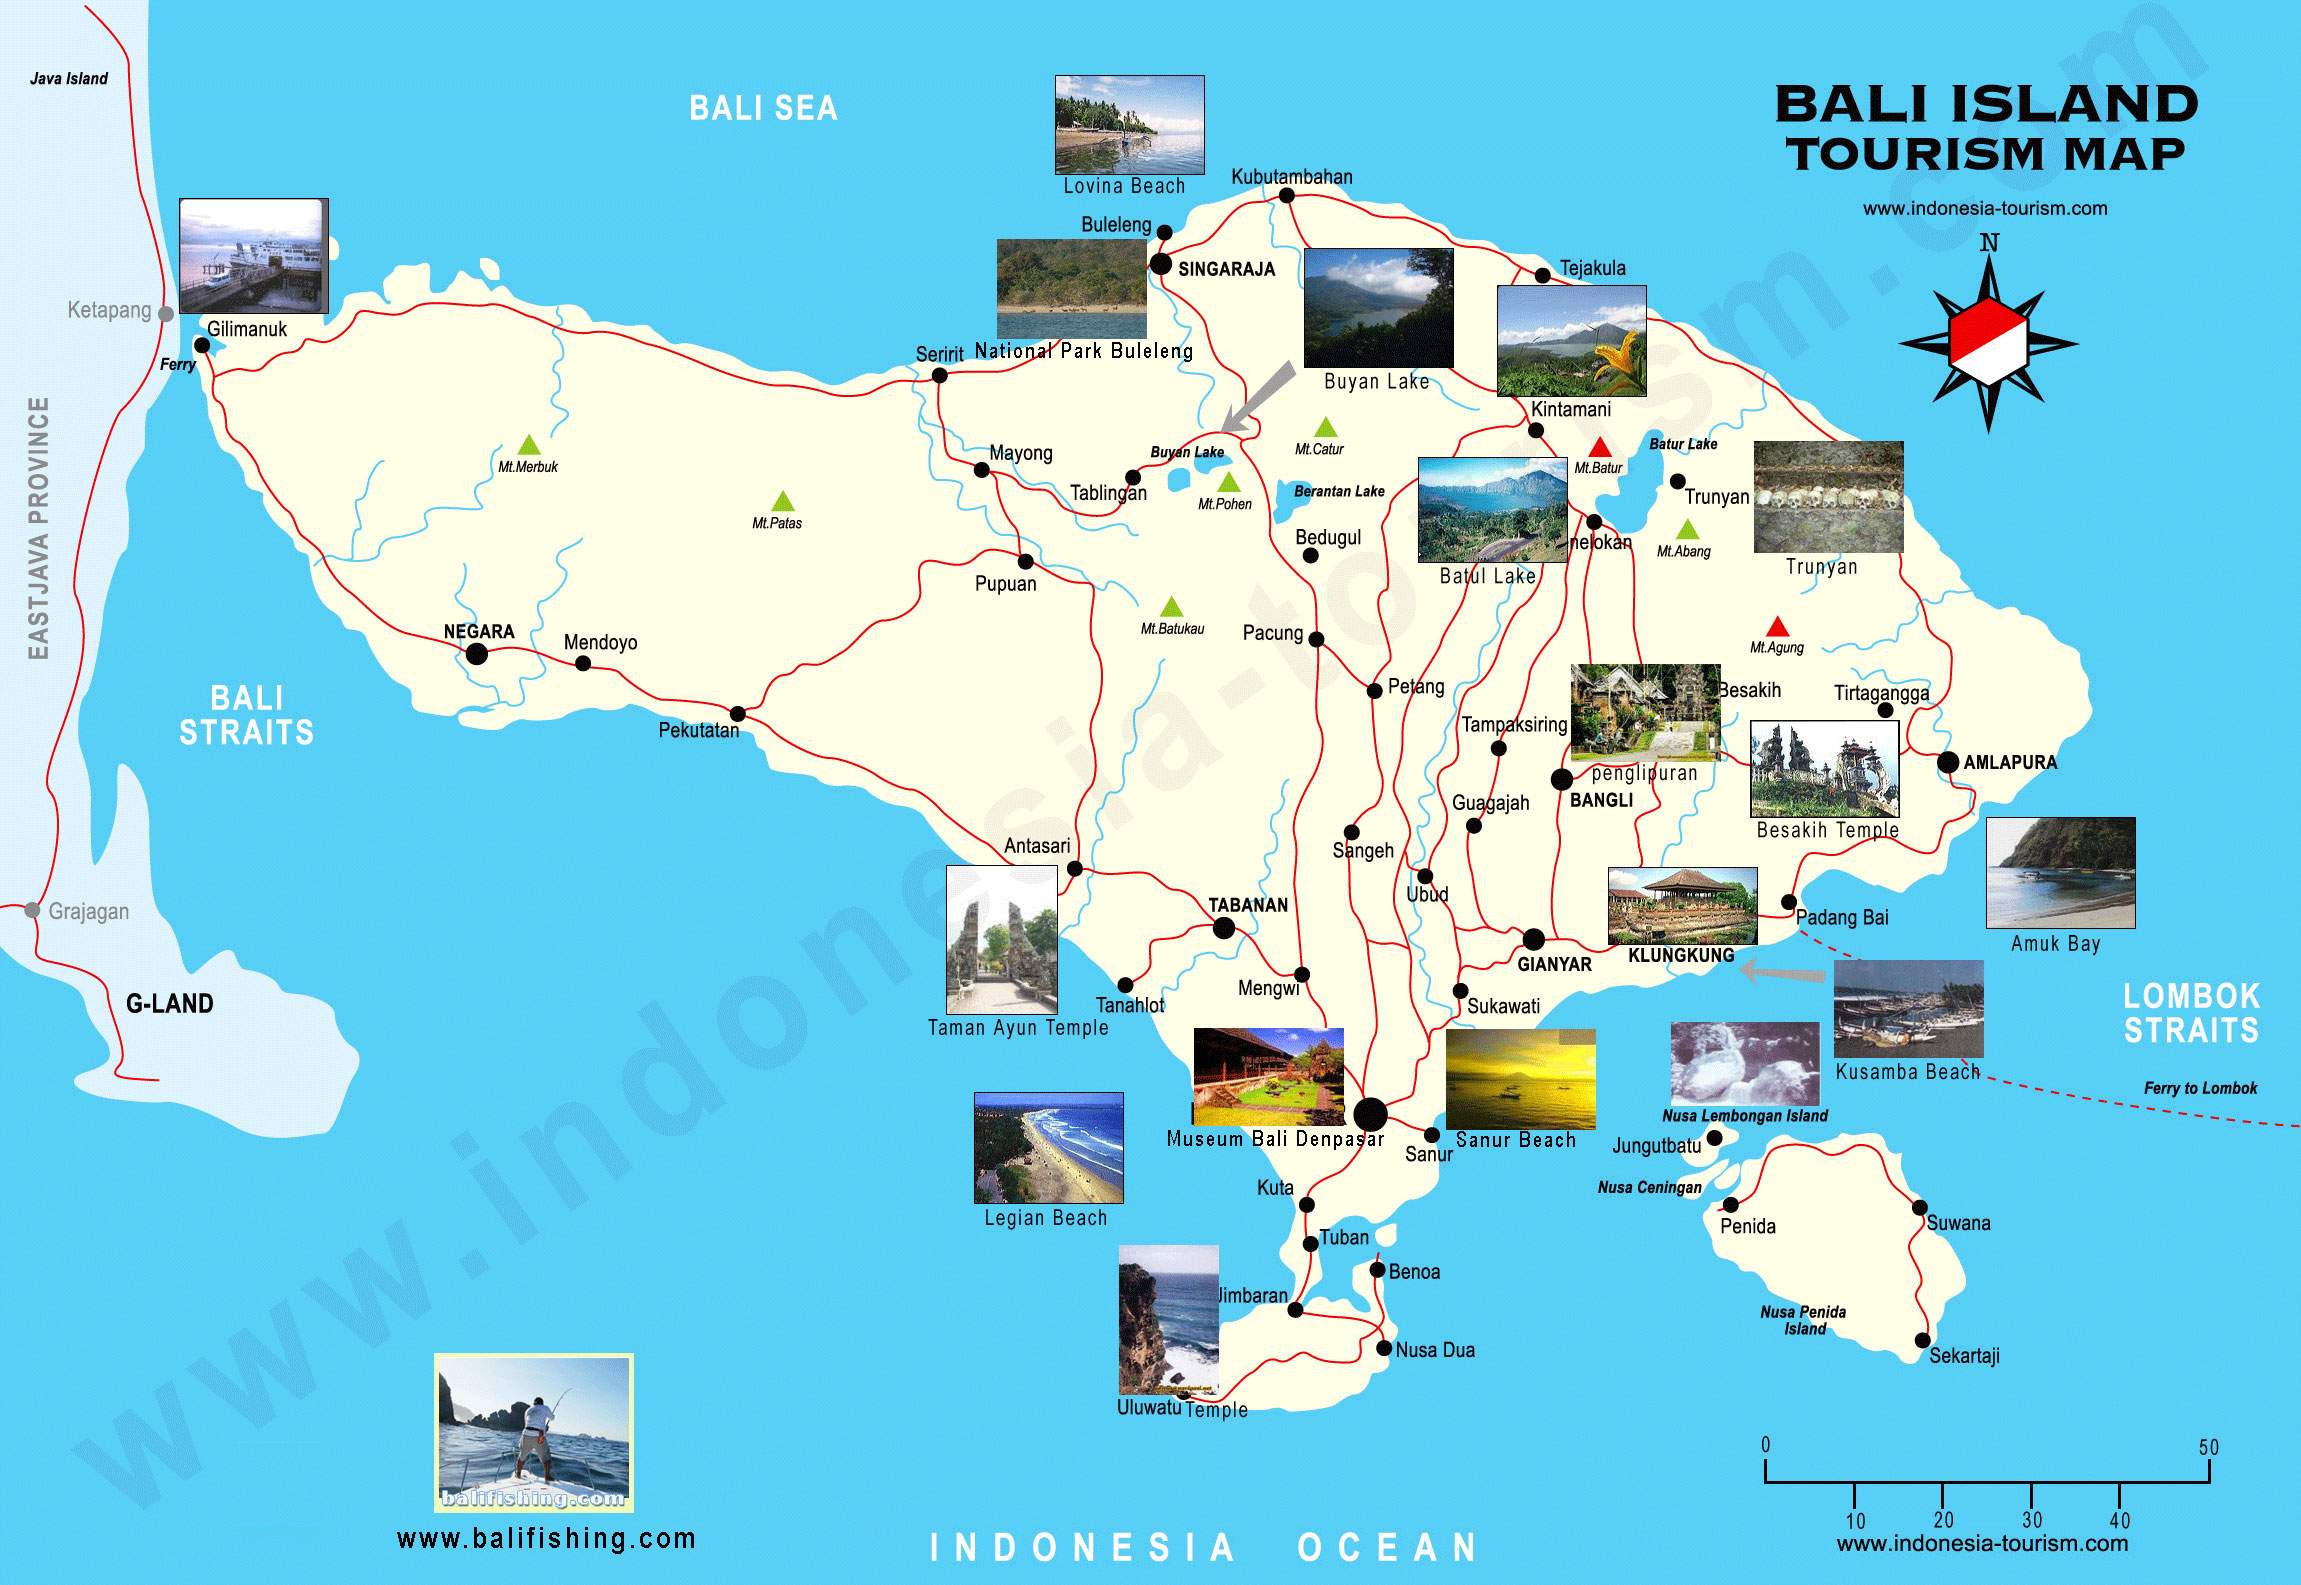 Bali Karte Canggu.Large Bali Maps For Free Download And Print High